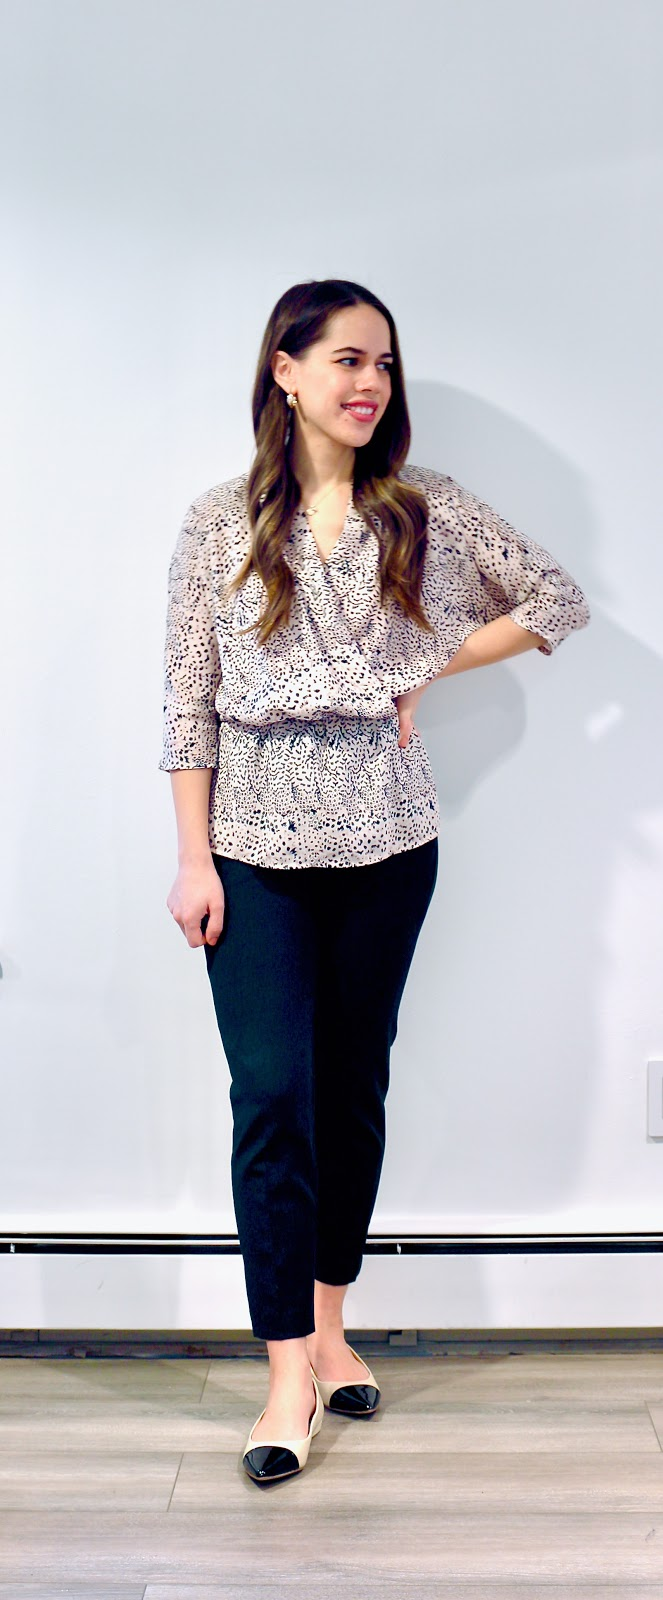 Jules in Flats - J.Crew Cameron Slim Crop Pant (Business Casual Winter Workwear on a Budget)